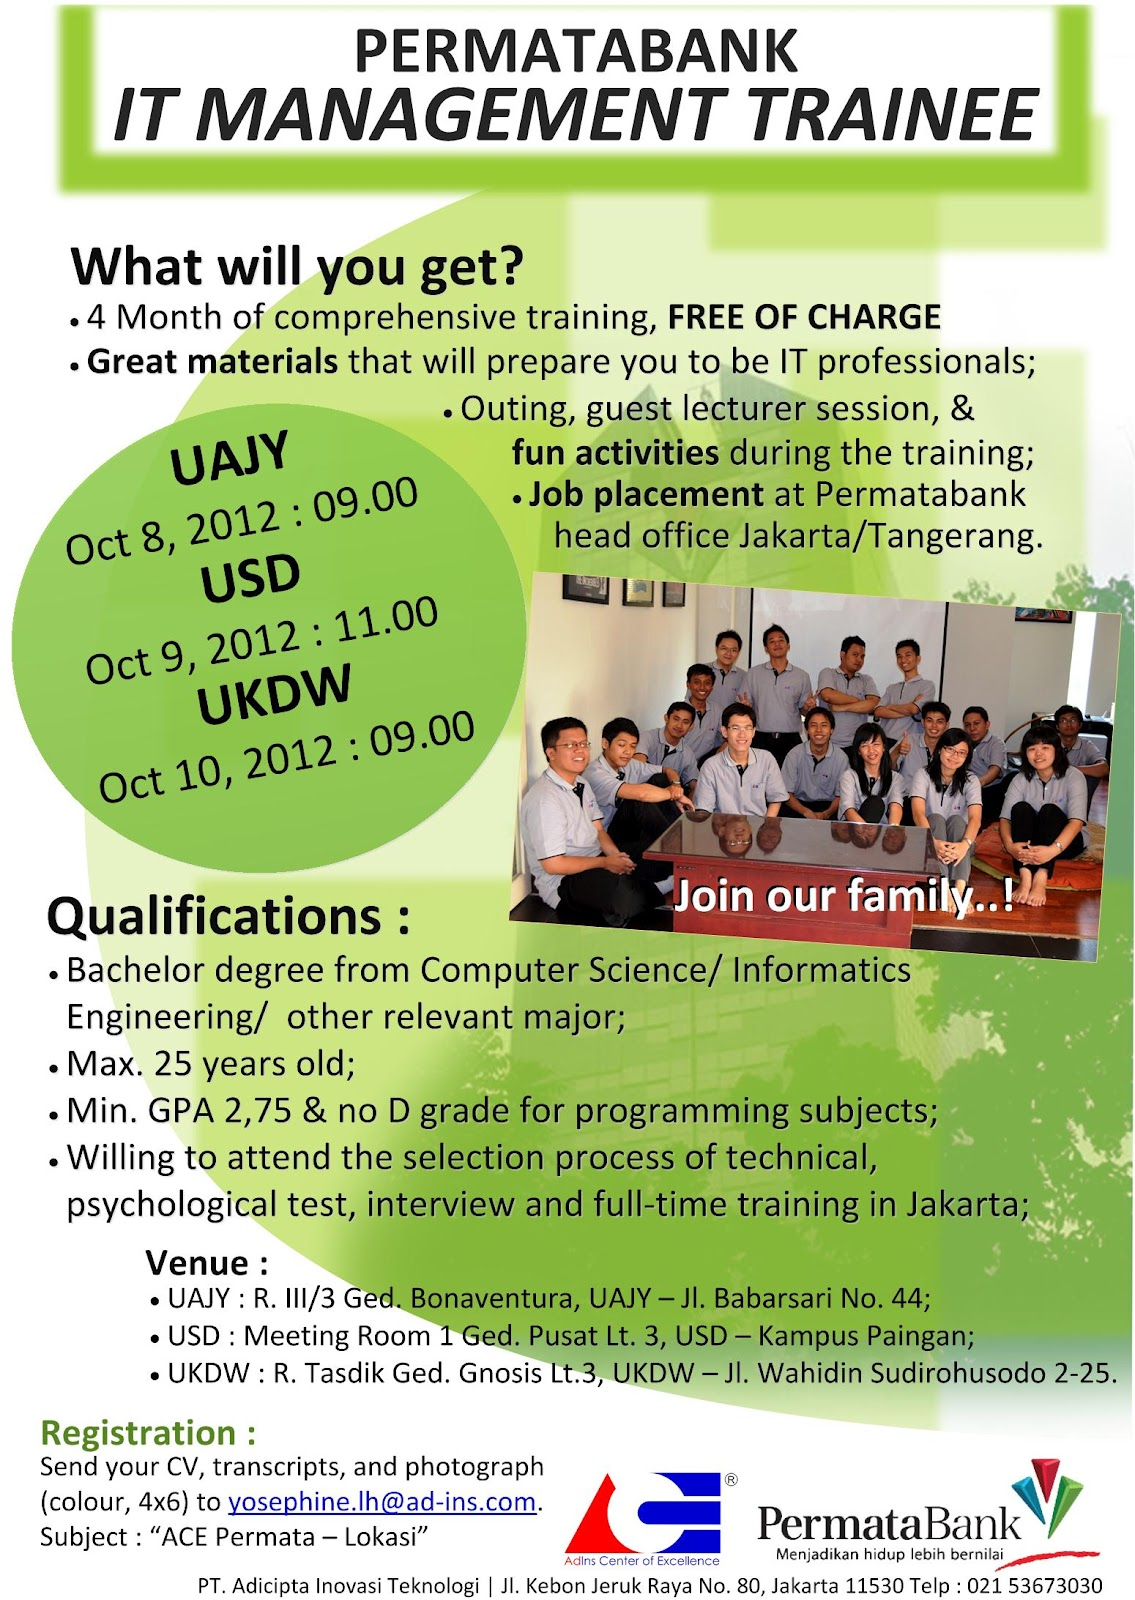 Permata Bank Karir September 2012 : IT Management Trainee Program